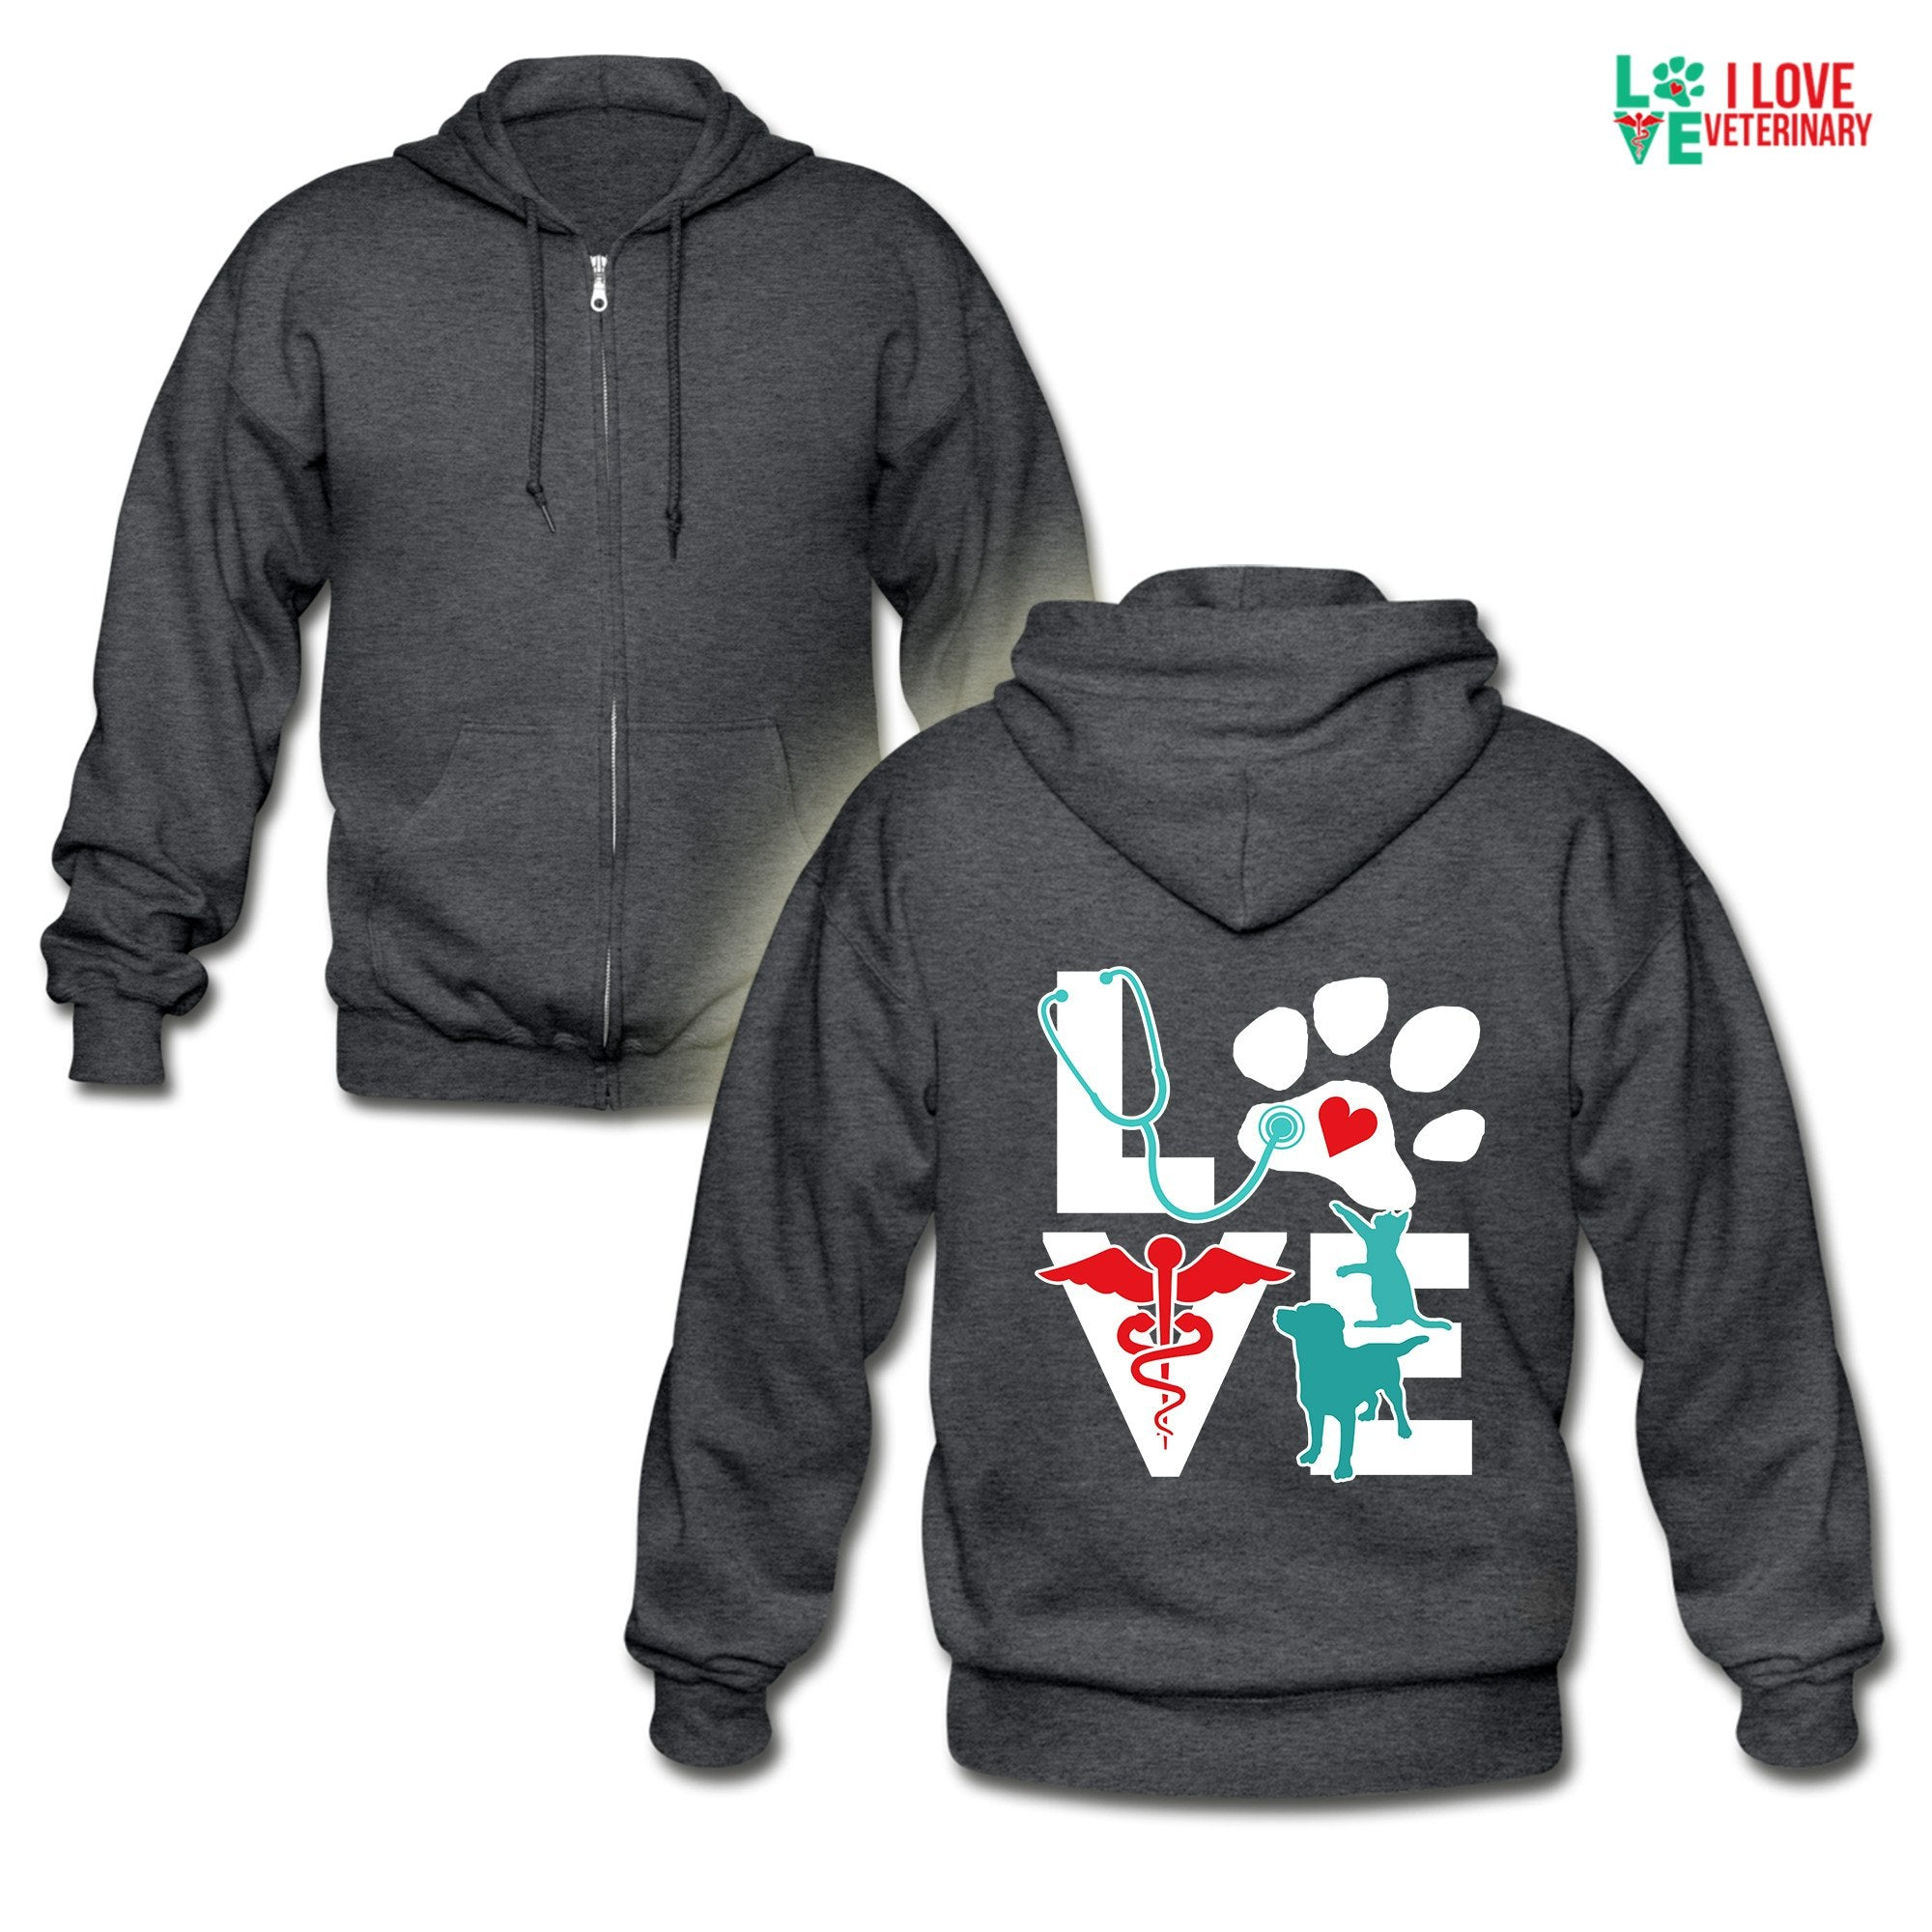 Love Dog and Cat Unisex Zip Hoodie